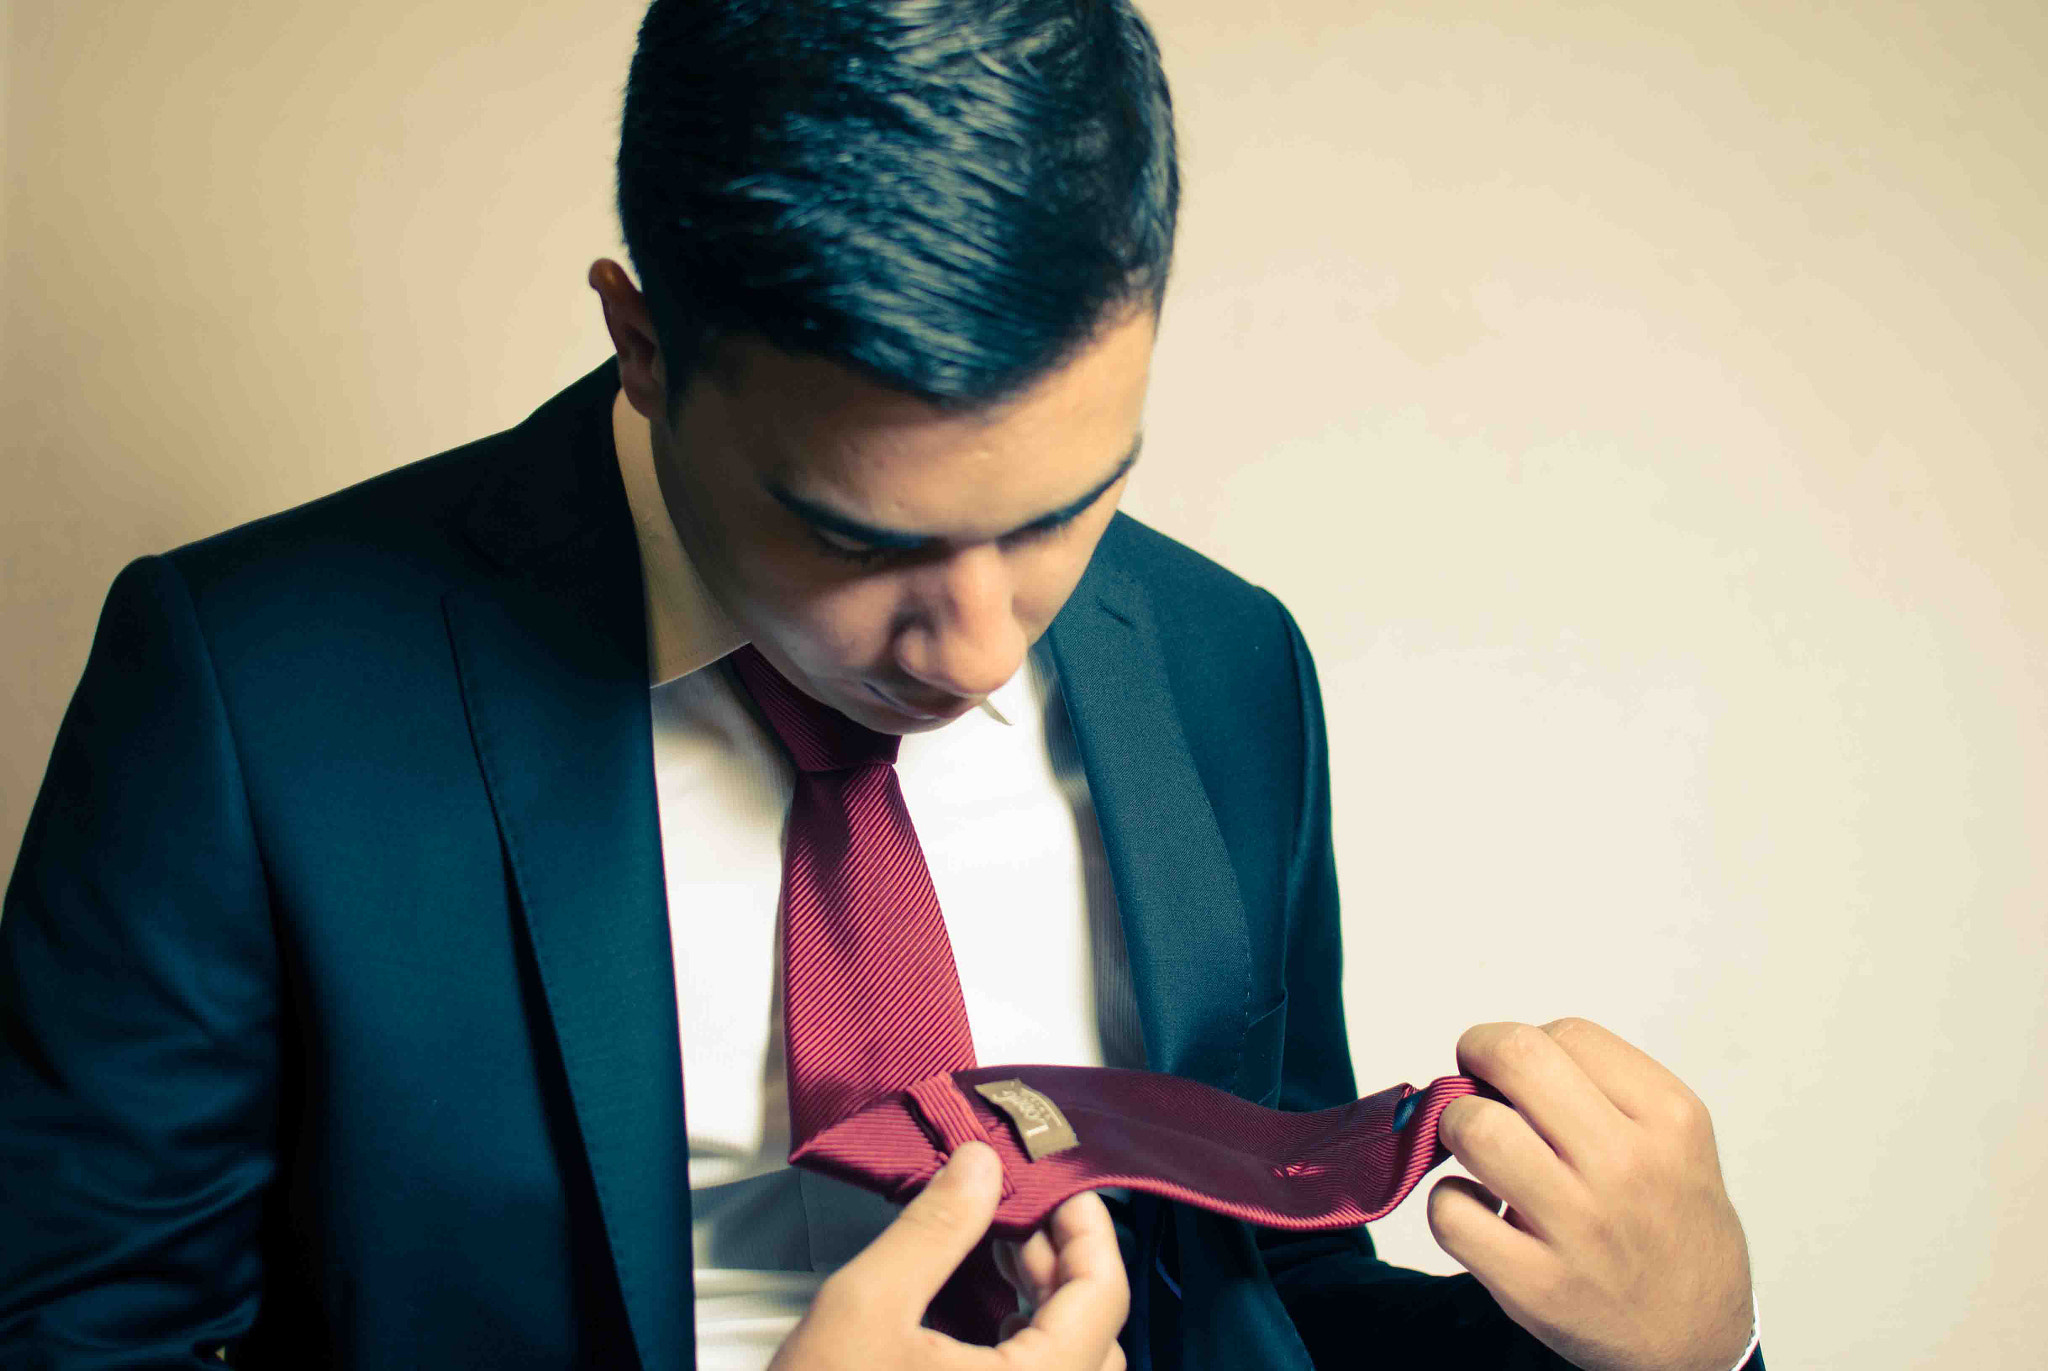 Photograph Erwann & the red tie by Alex Drl on 500px